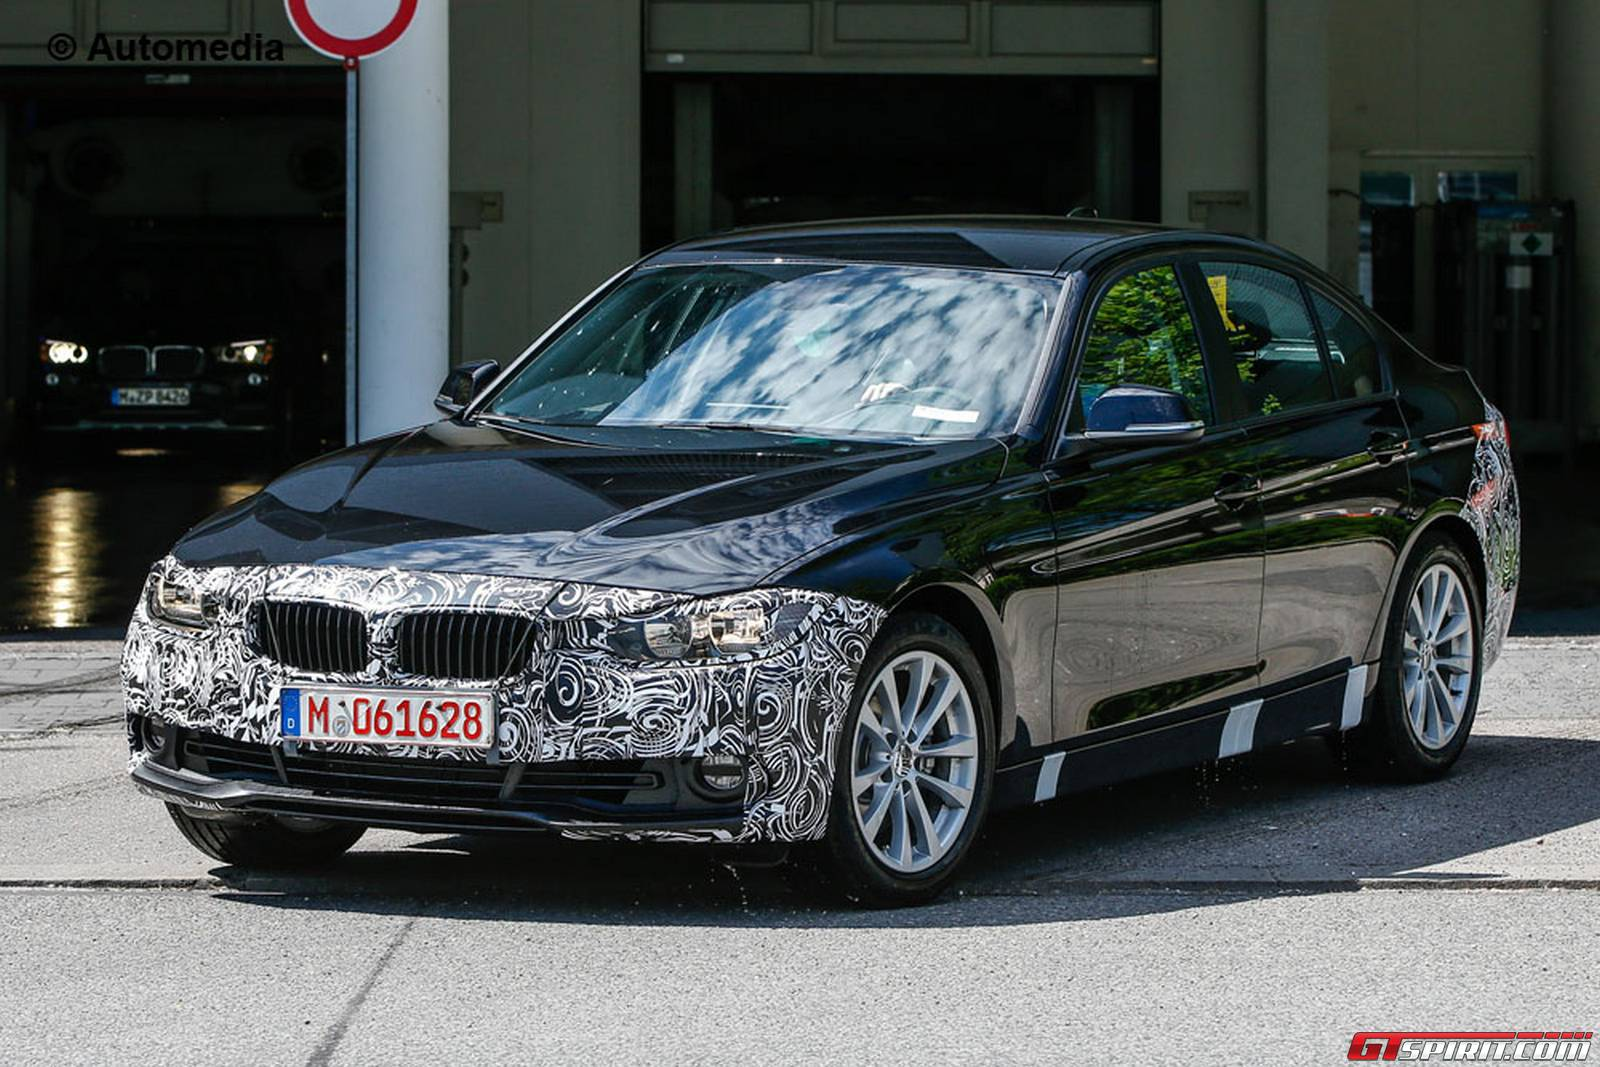 new bmw 3 series facelift spy shots with less camo gtspirit. Black Bedroom Furniture Sets. Home Design Ideas